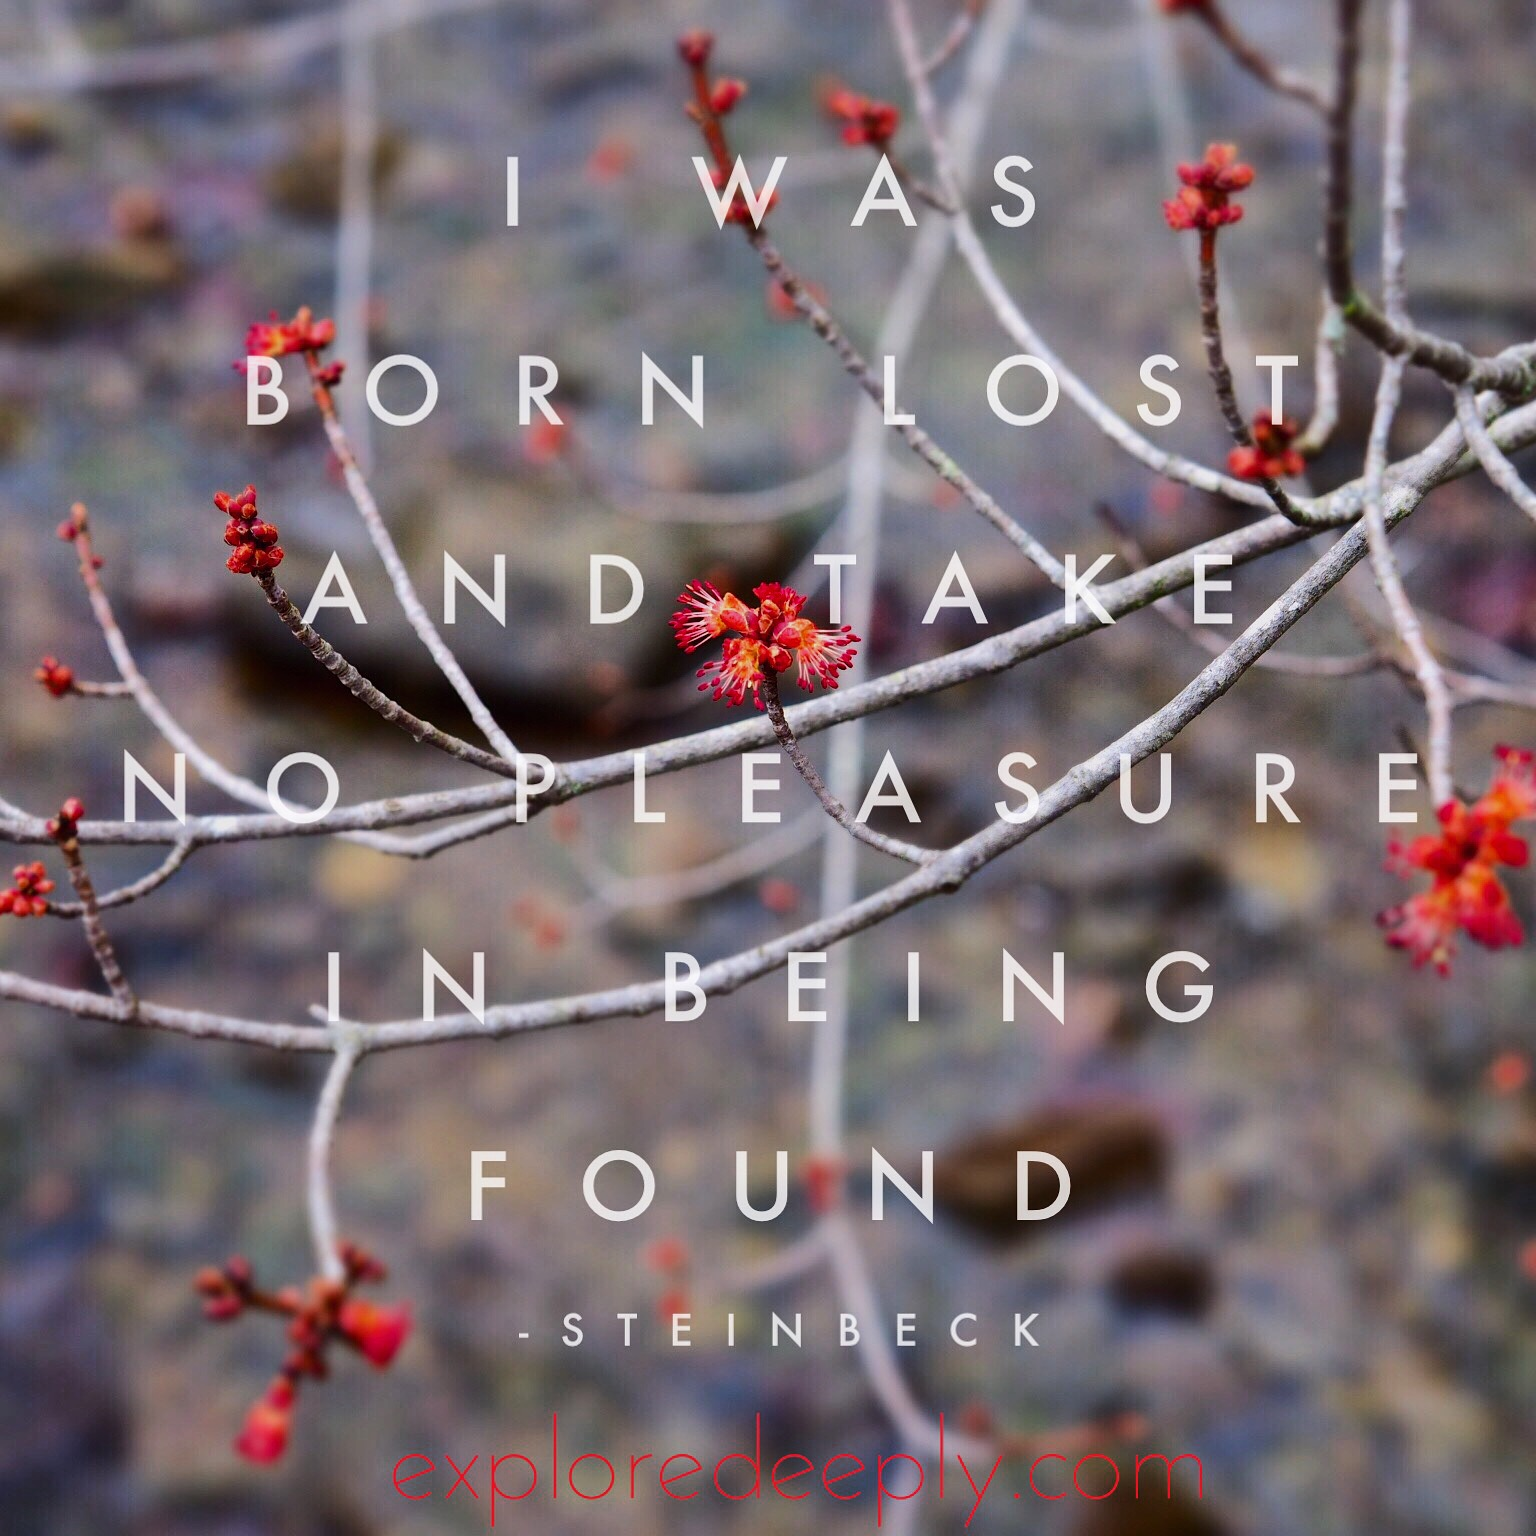 i was born lost and i take no pleasure in being found steinbeck quotes